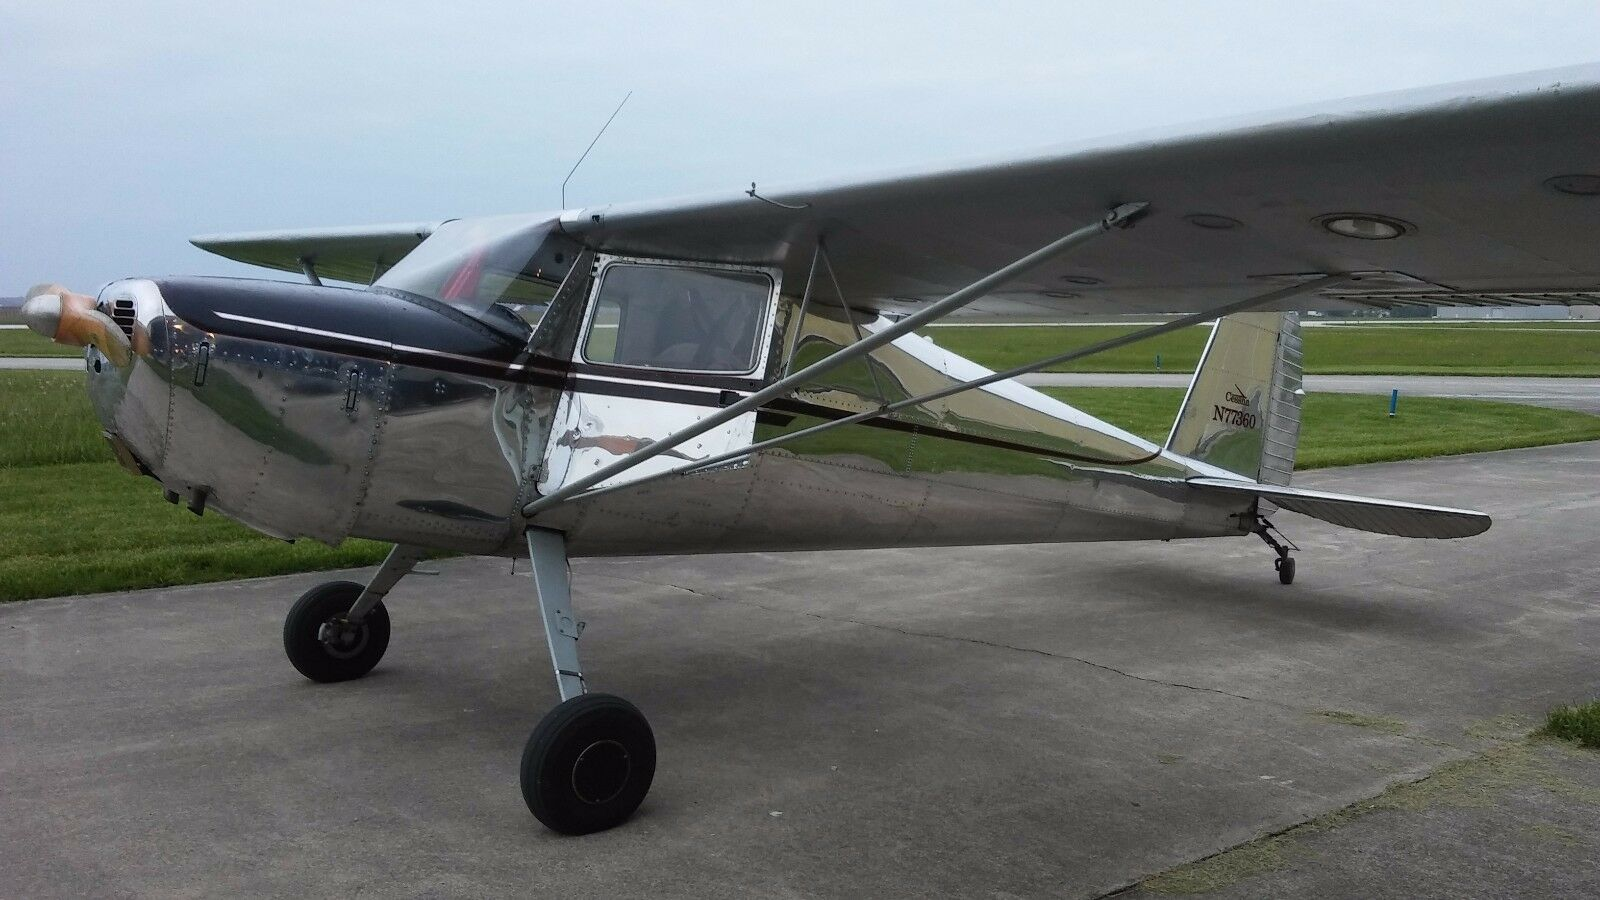 Cessna 120 Polished Used Cessna For Sale In Celina